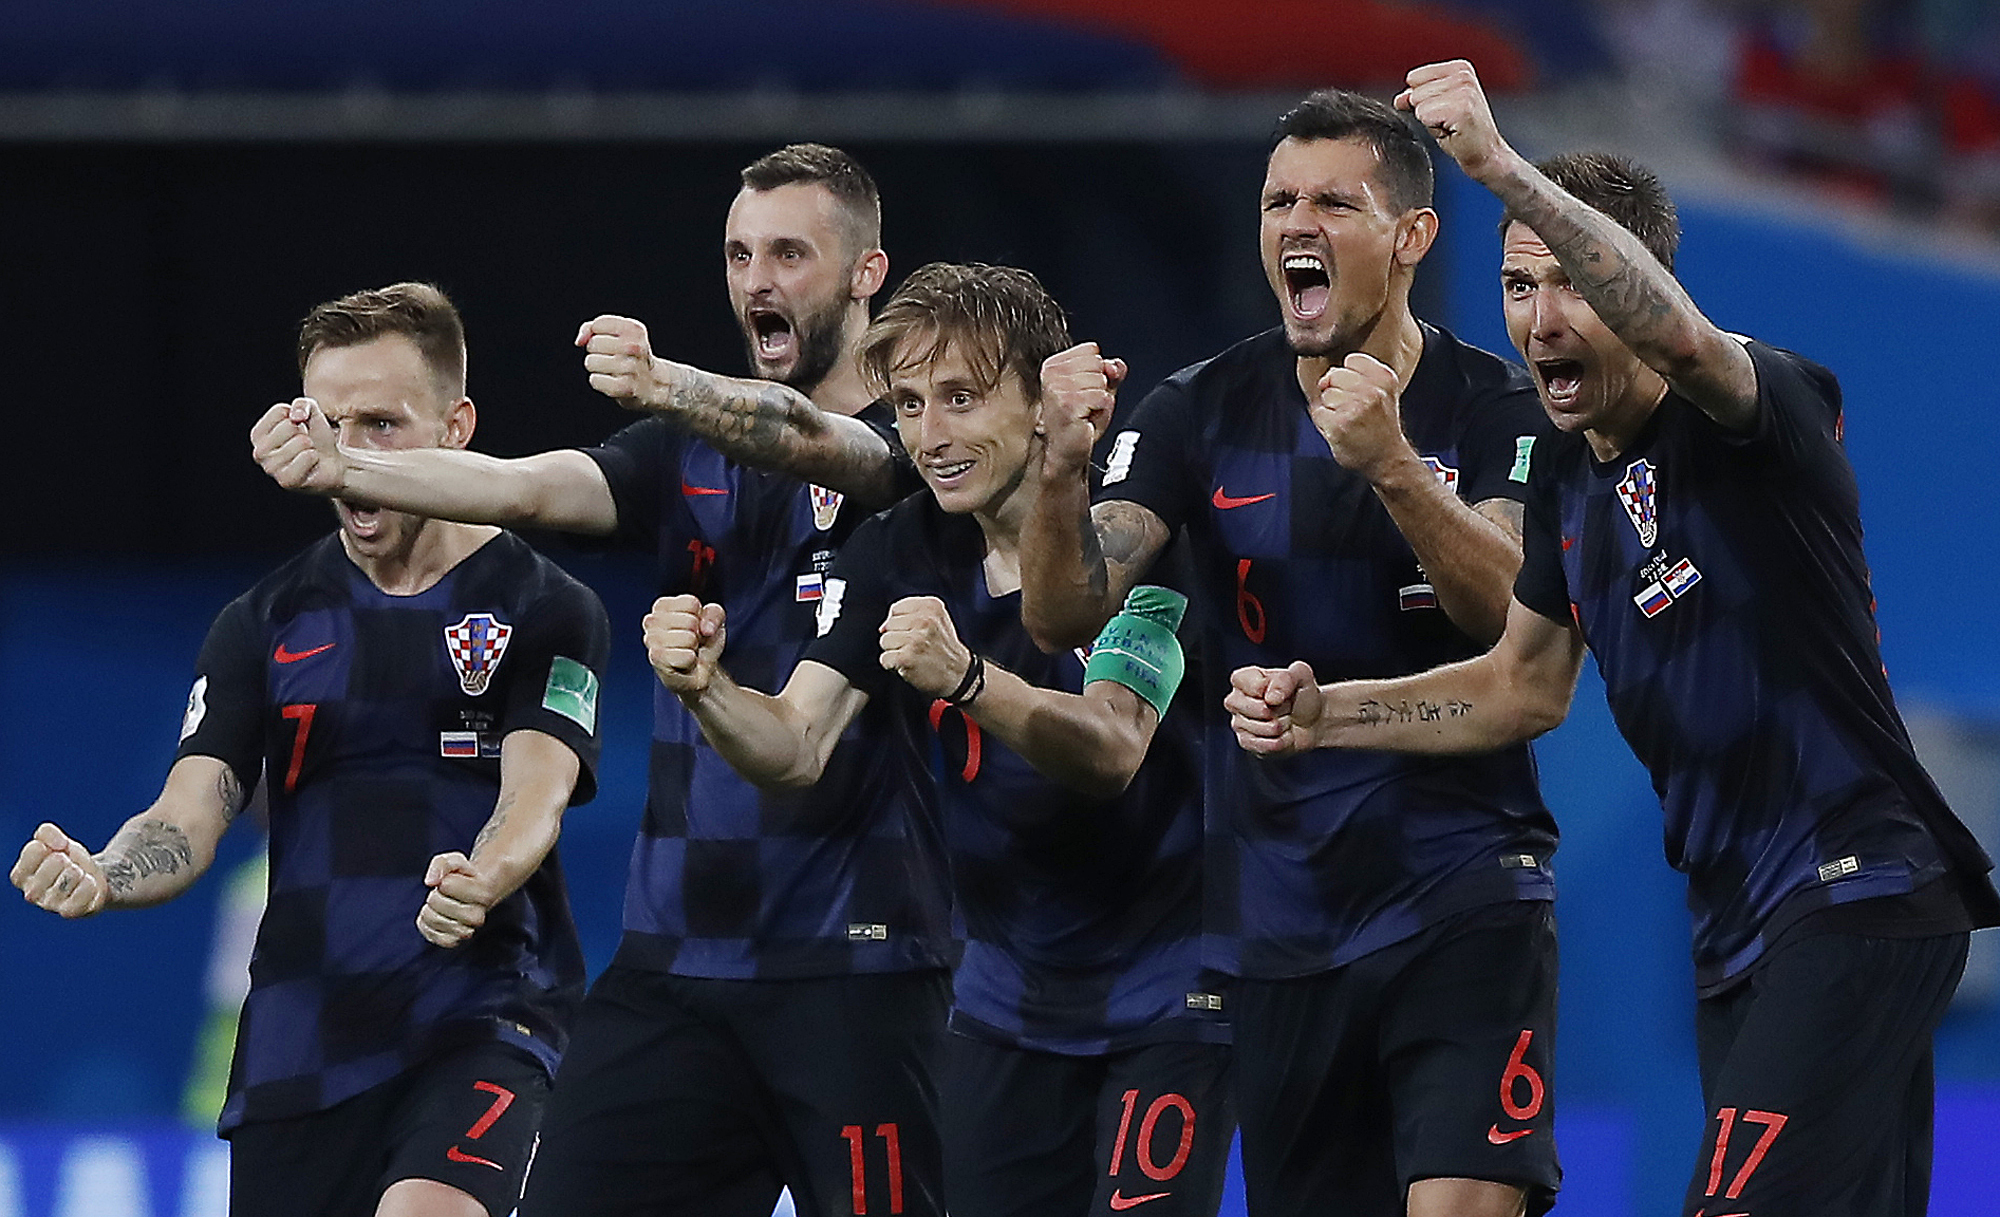 France advances to World Cup final, beats Belgium 1-0